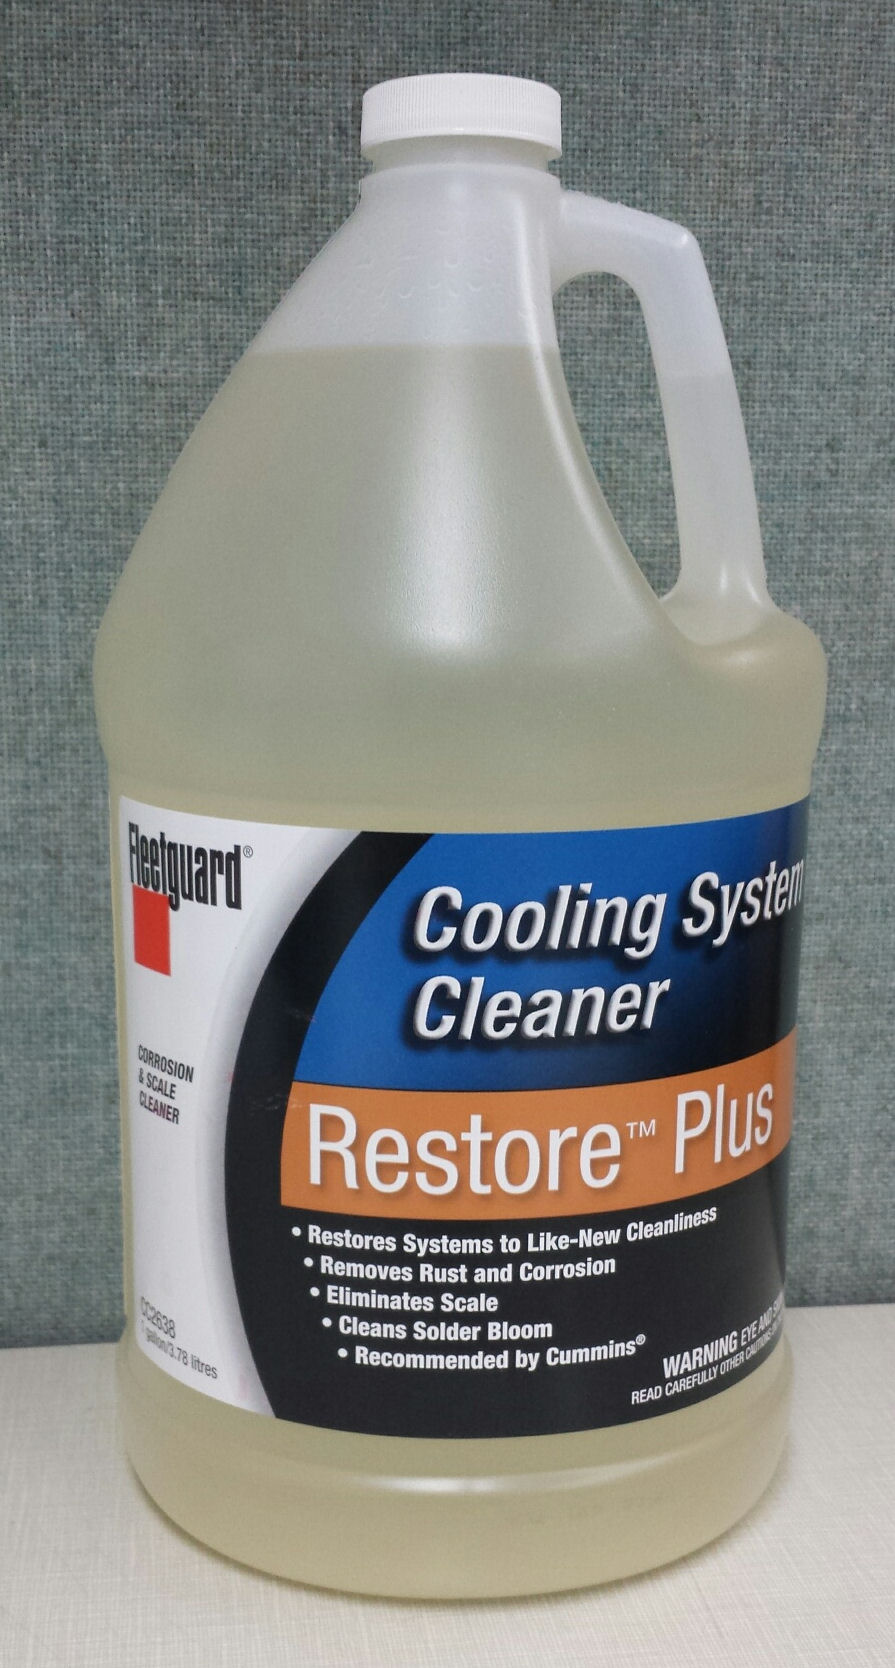 Fleetguard Cc2638 Restore Plus Cooling System Cleaner 3